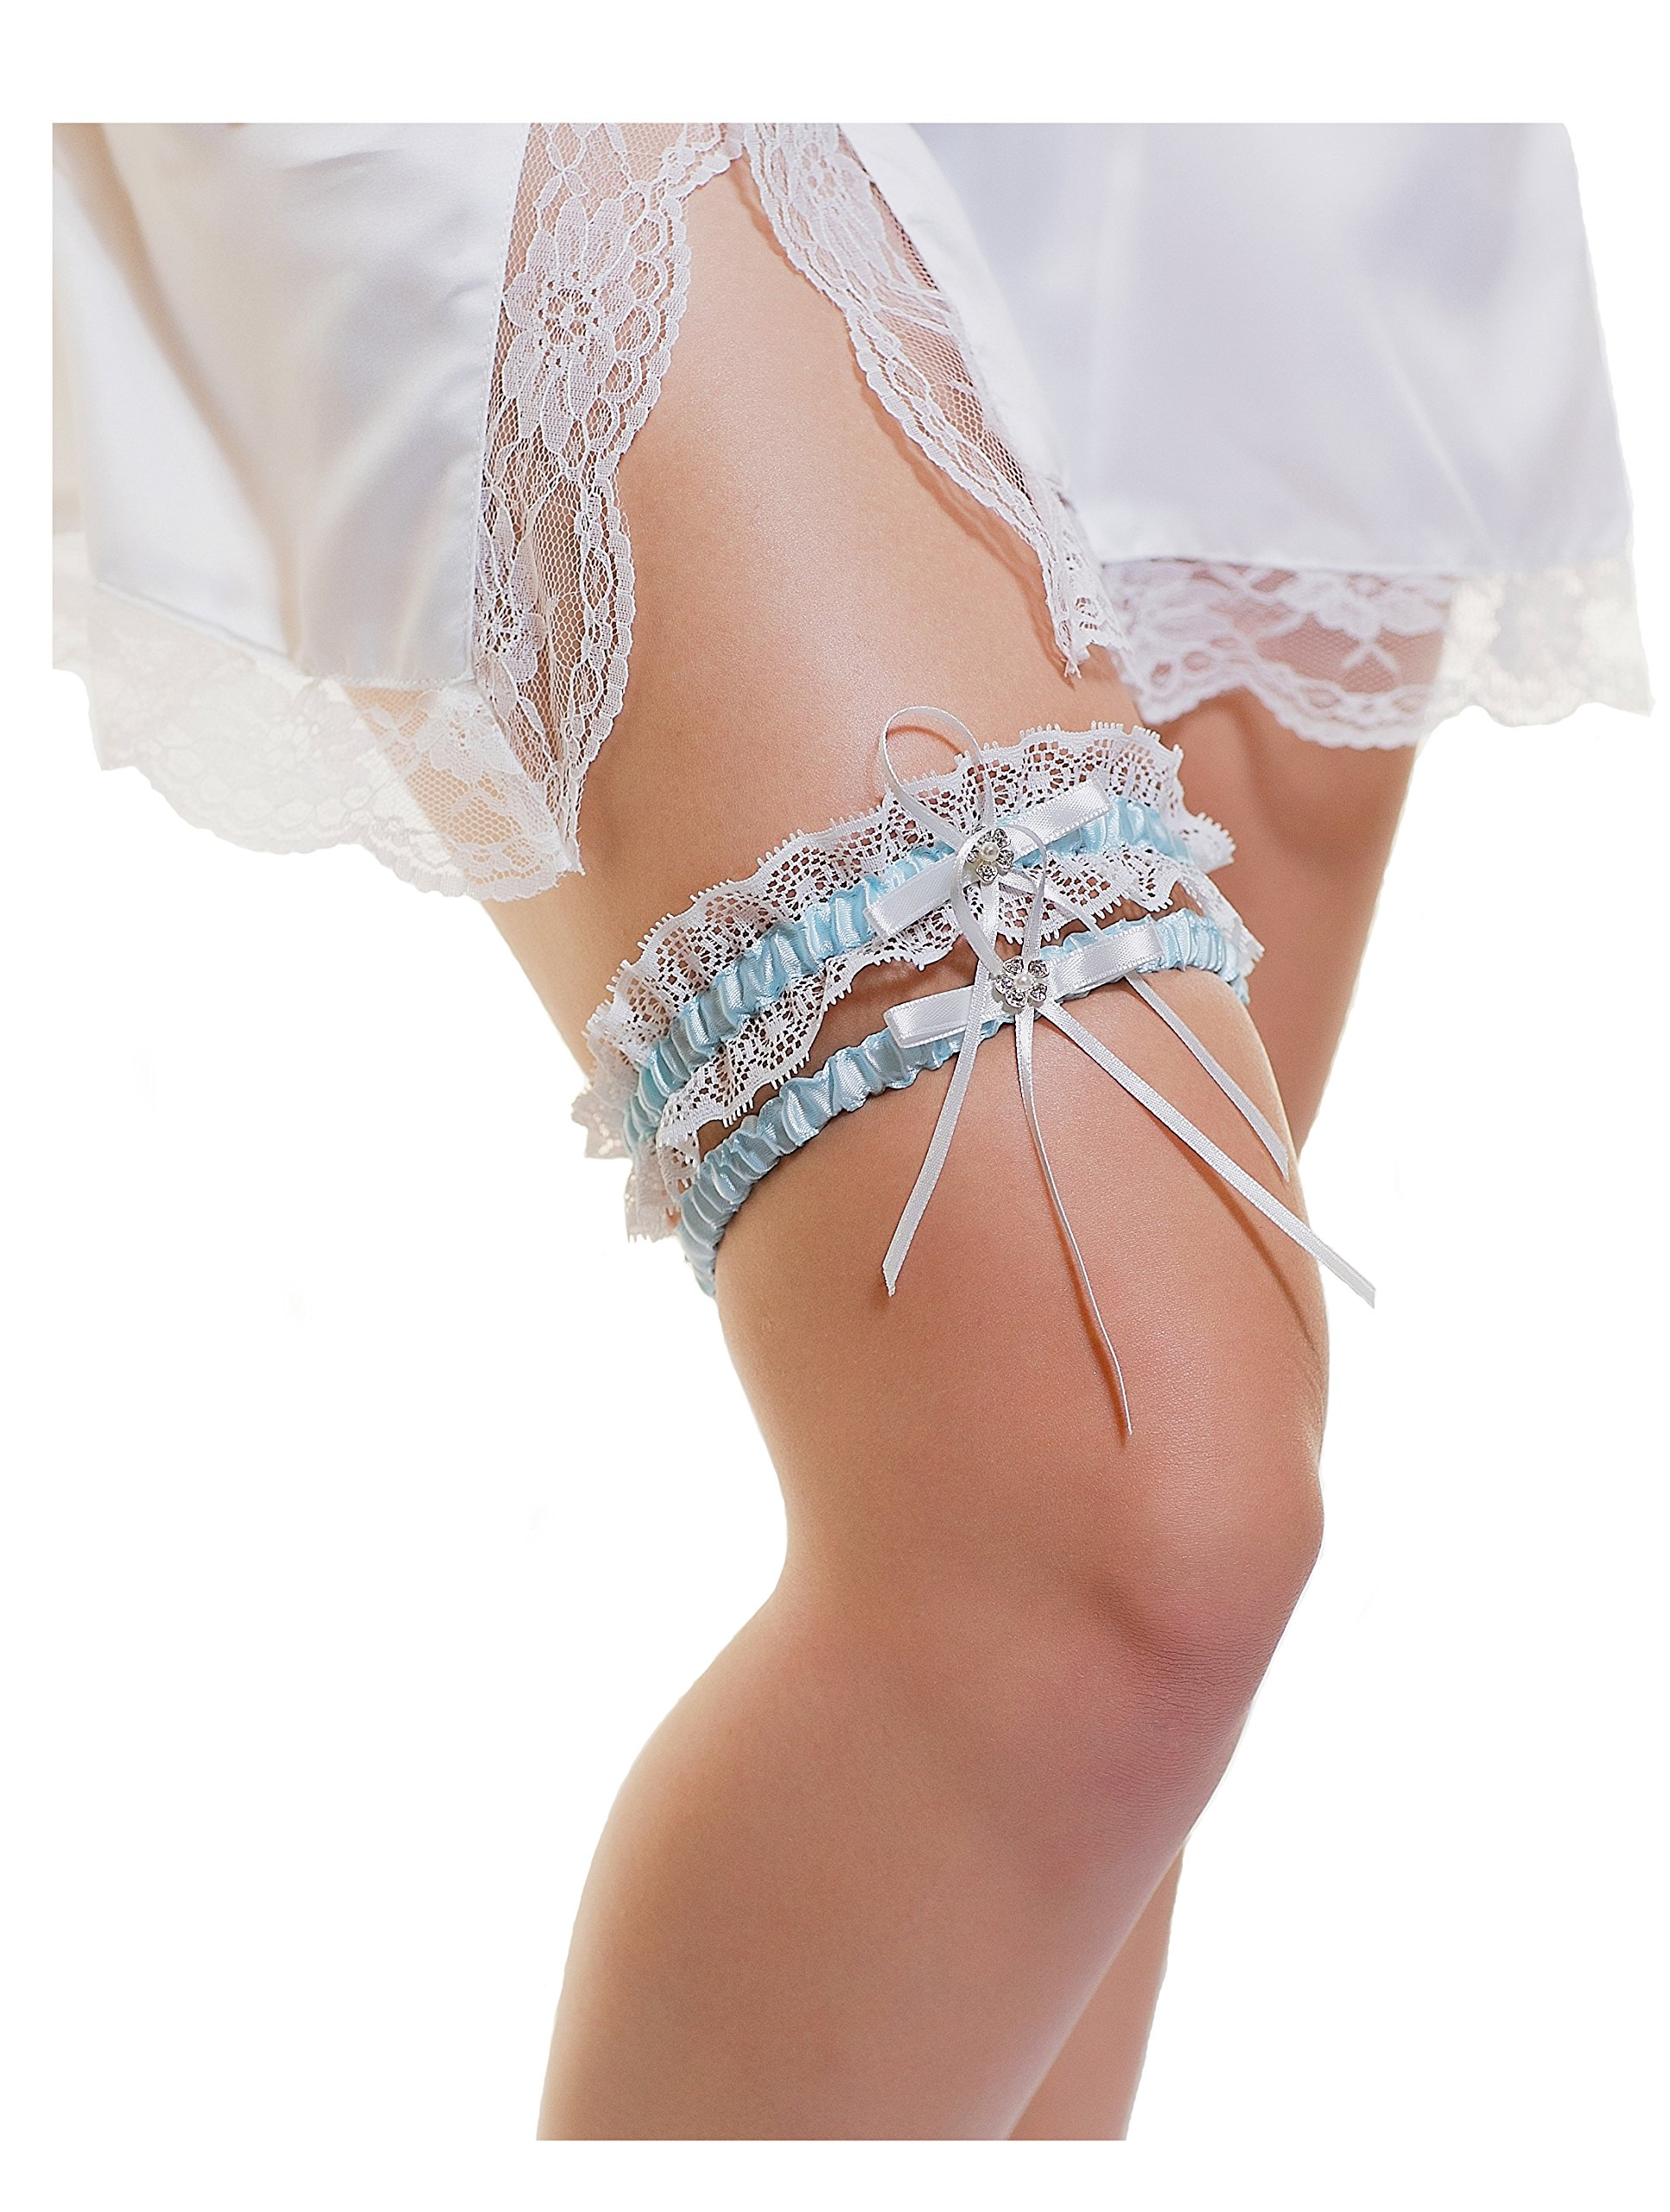 LR Bridal Blue Wedding Garter Brides Set of 2 Rhinestone Satin Bow. One Keeps one Garter Throw!